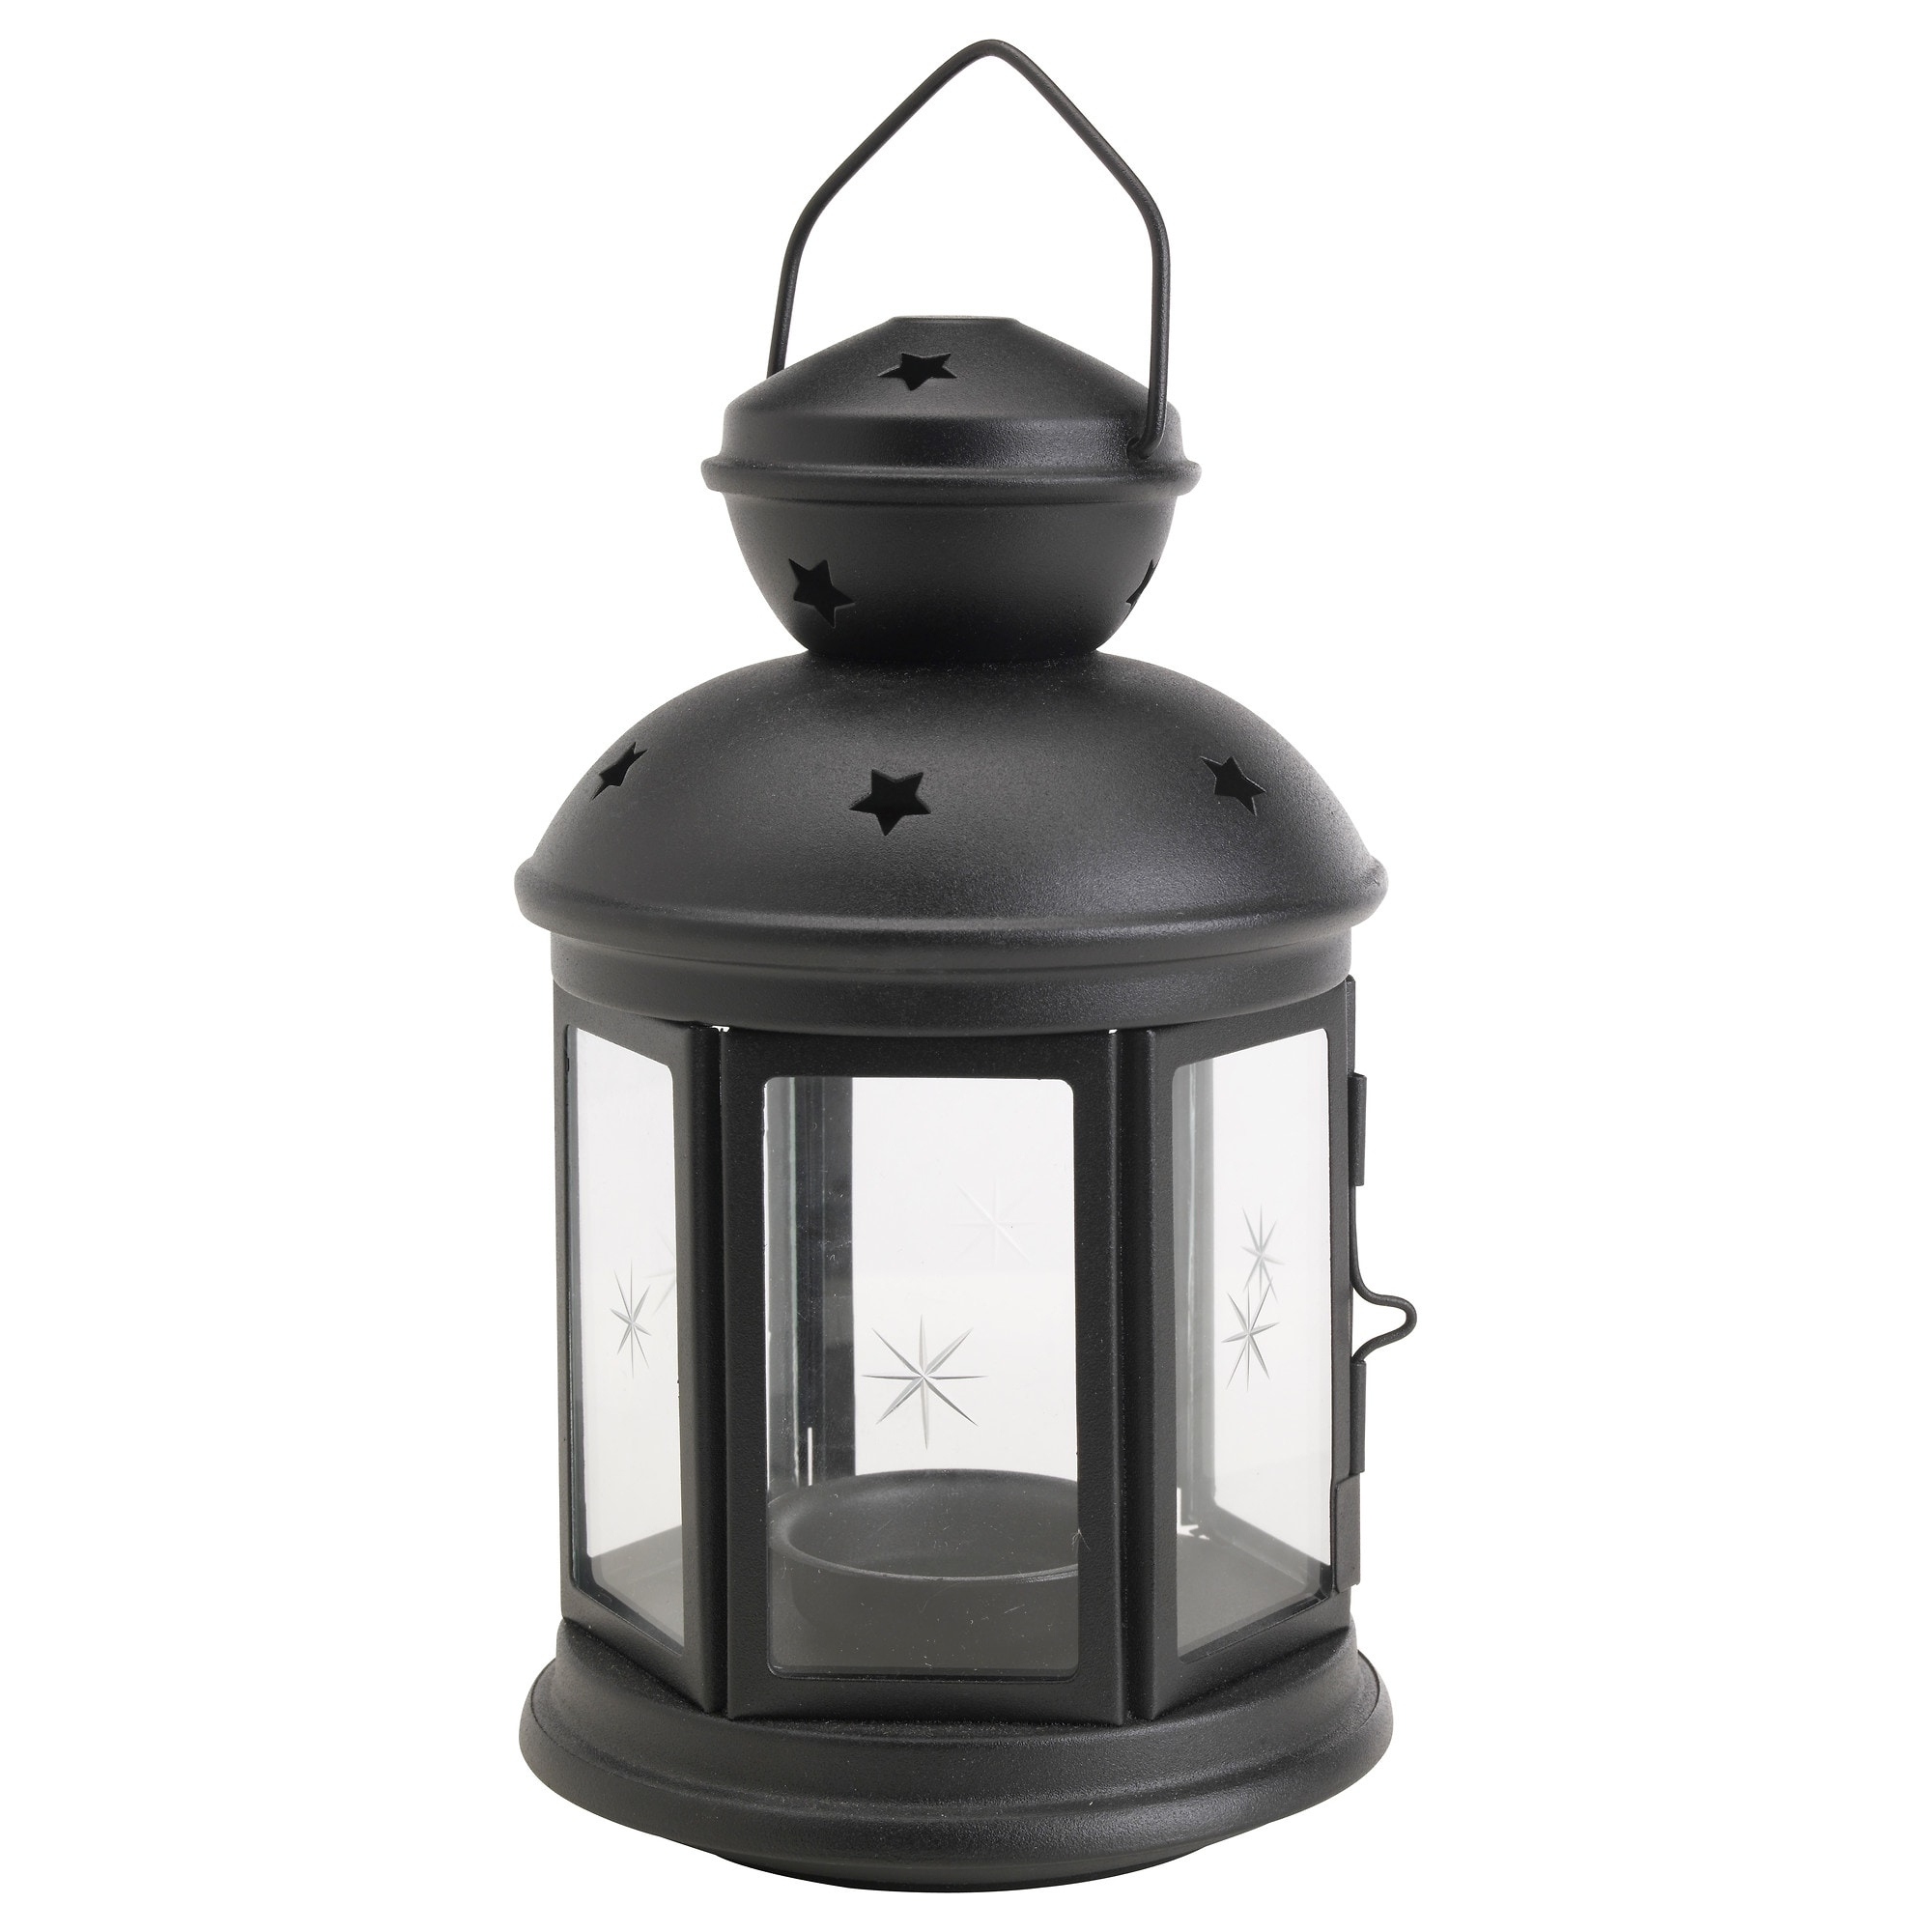 Favorite Rotera Lantern For Tealight – Ikea With Regard To Ikea Outdoor Lanterns (View 4 of 20)